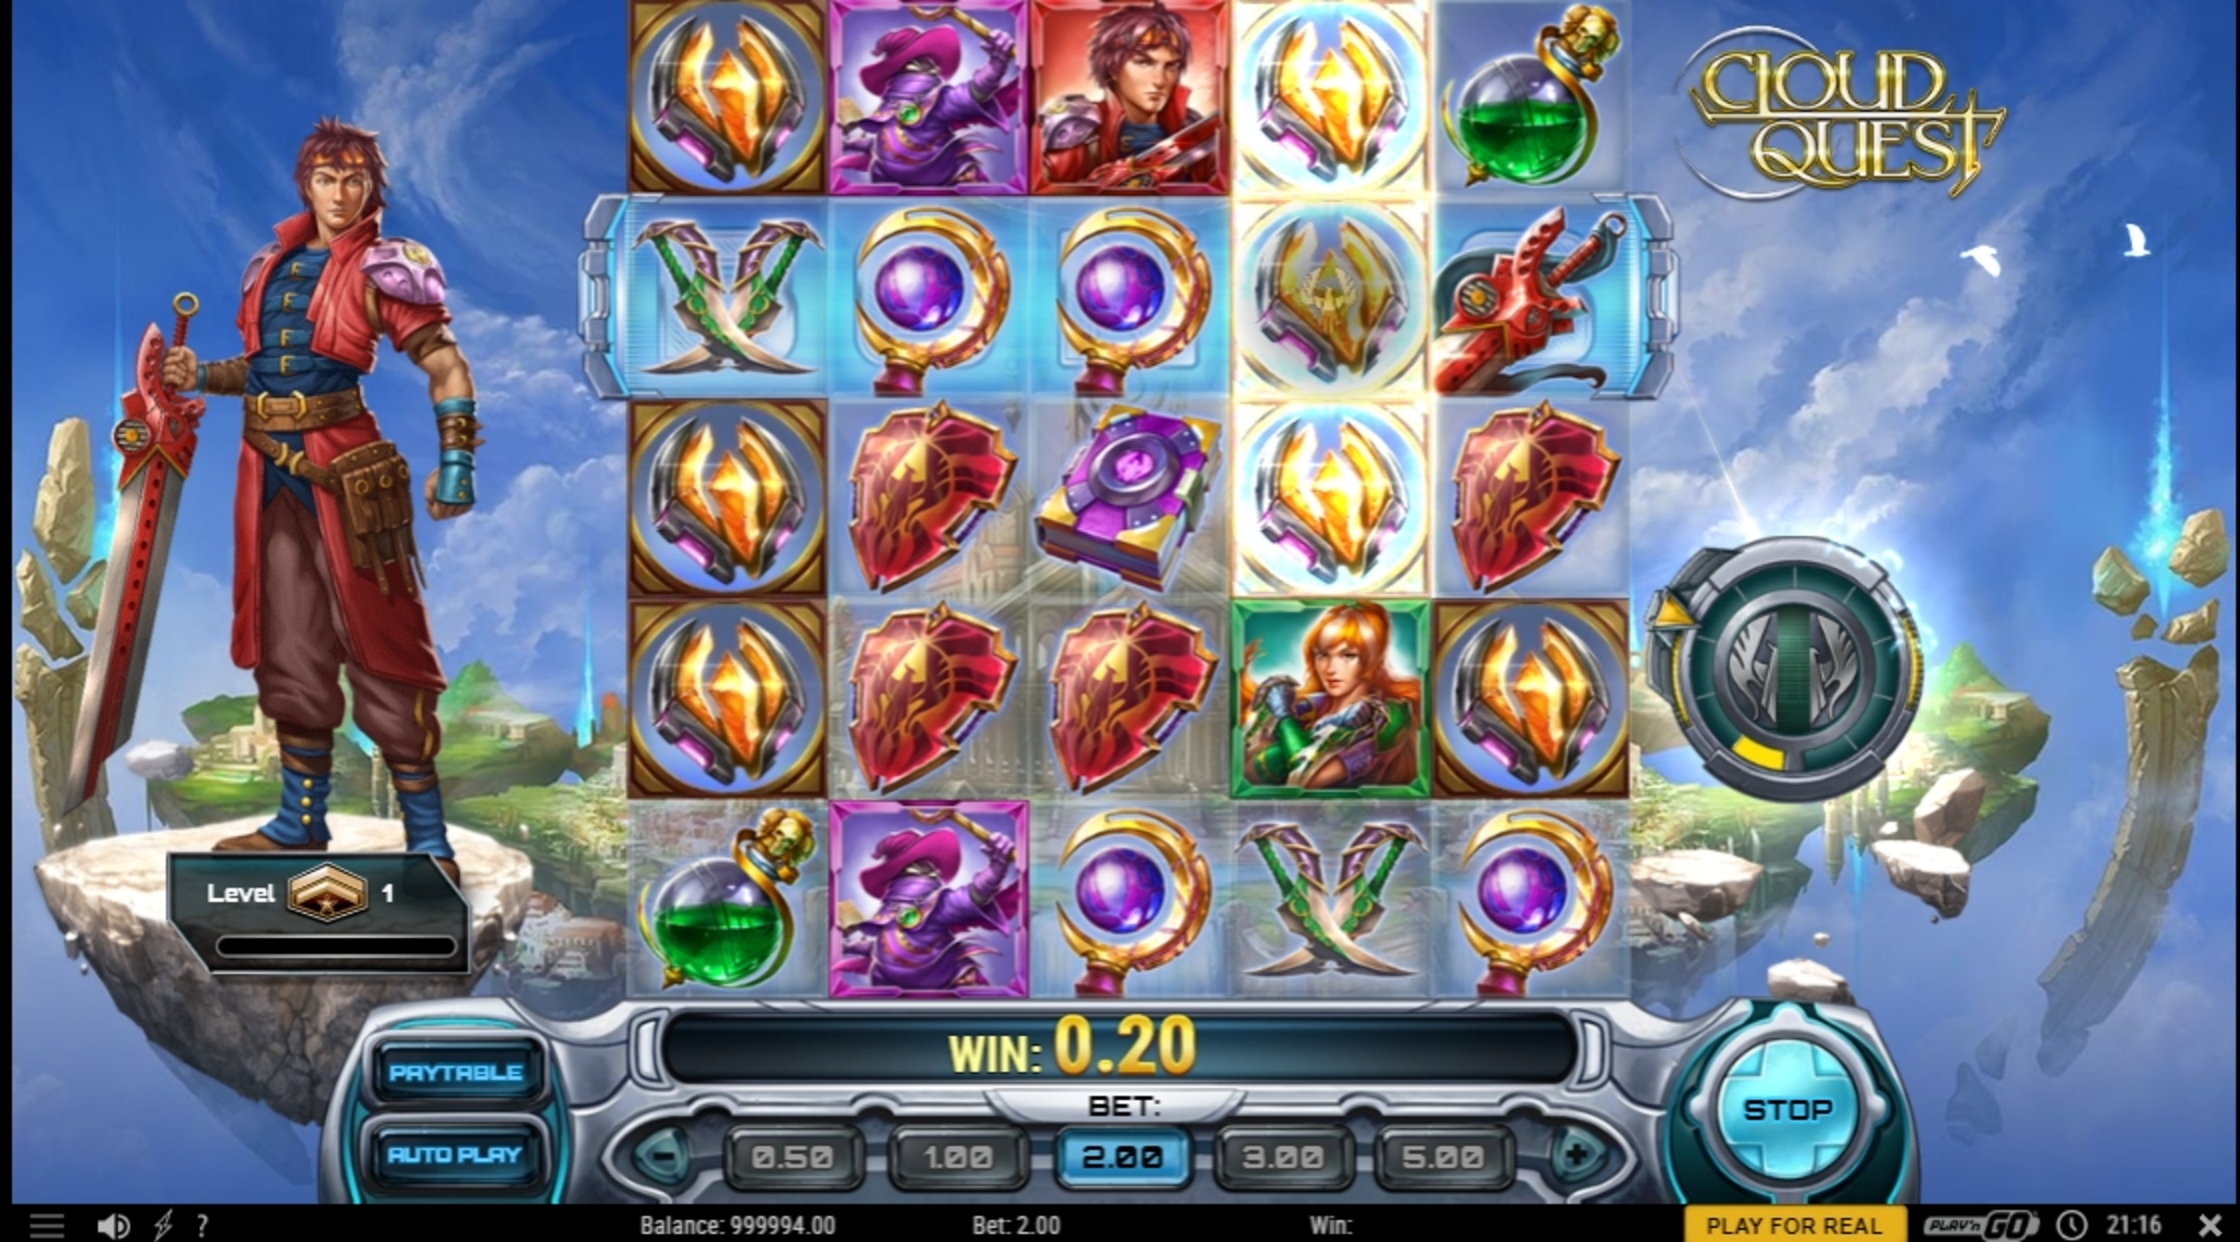 Win Money in Cloud Quest Free Slot Game by Play'n Go